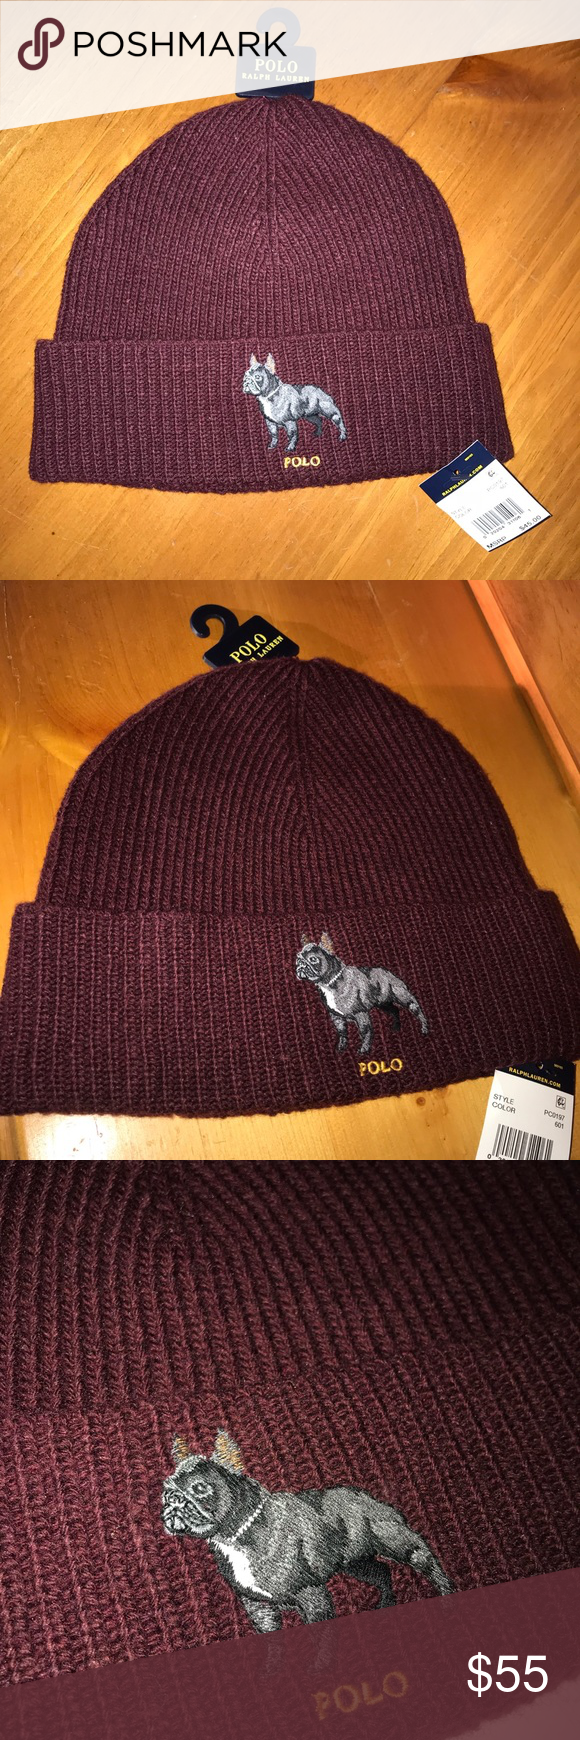 cb09c94635faf Polo Ralph Lauren French Bulldog Beanie Maroon 100% Authentic Ralph Lauren  Product 🍷Wine Red Colorway🍷 Brand New with Tags Polo by Ralph Lauren ...